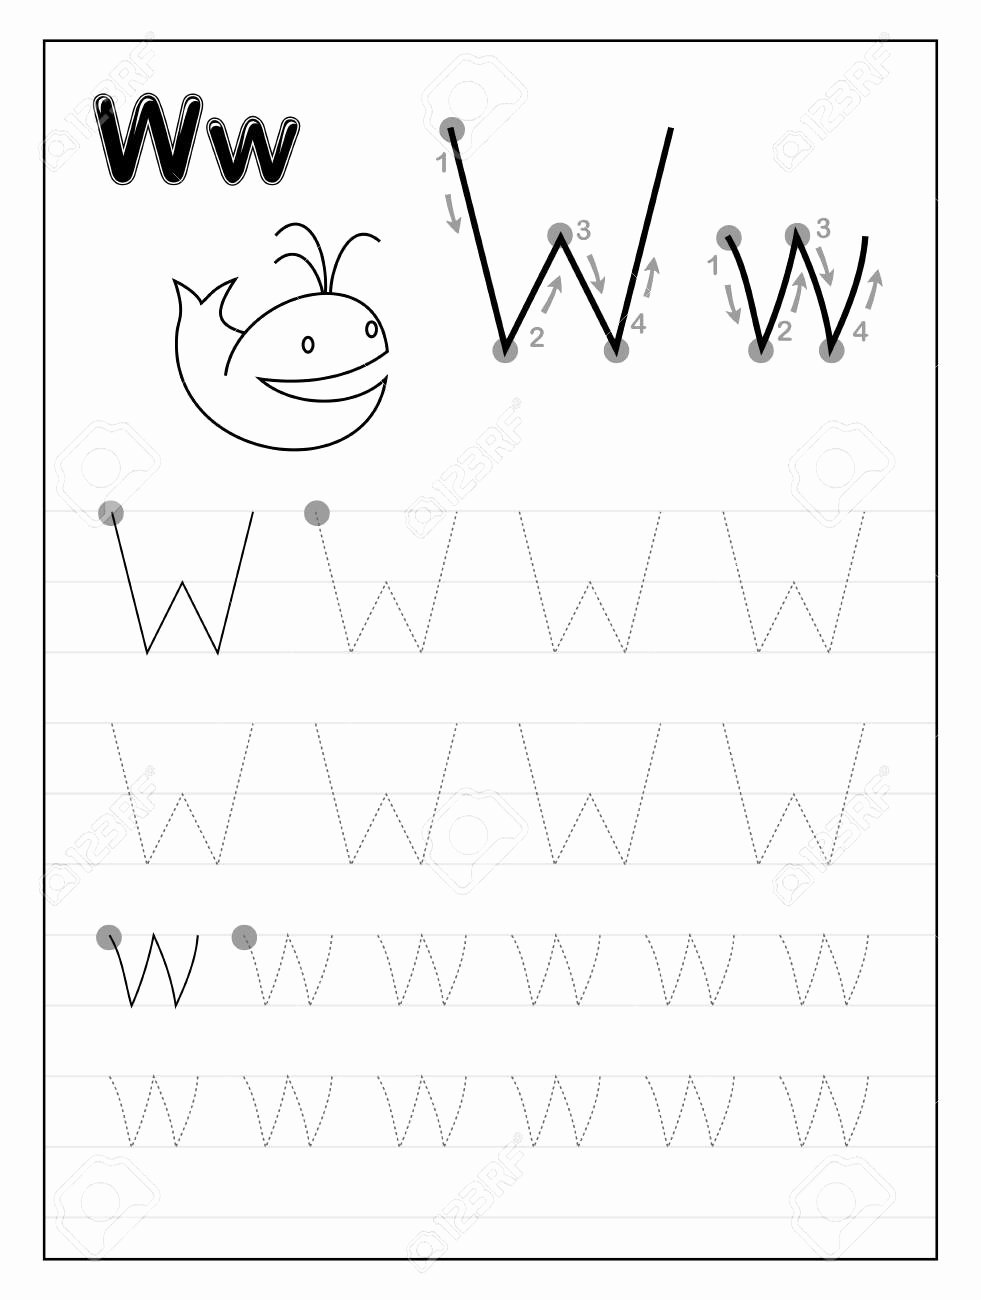 Letter W Worksheets for Preschoolers Unique Stock